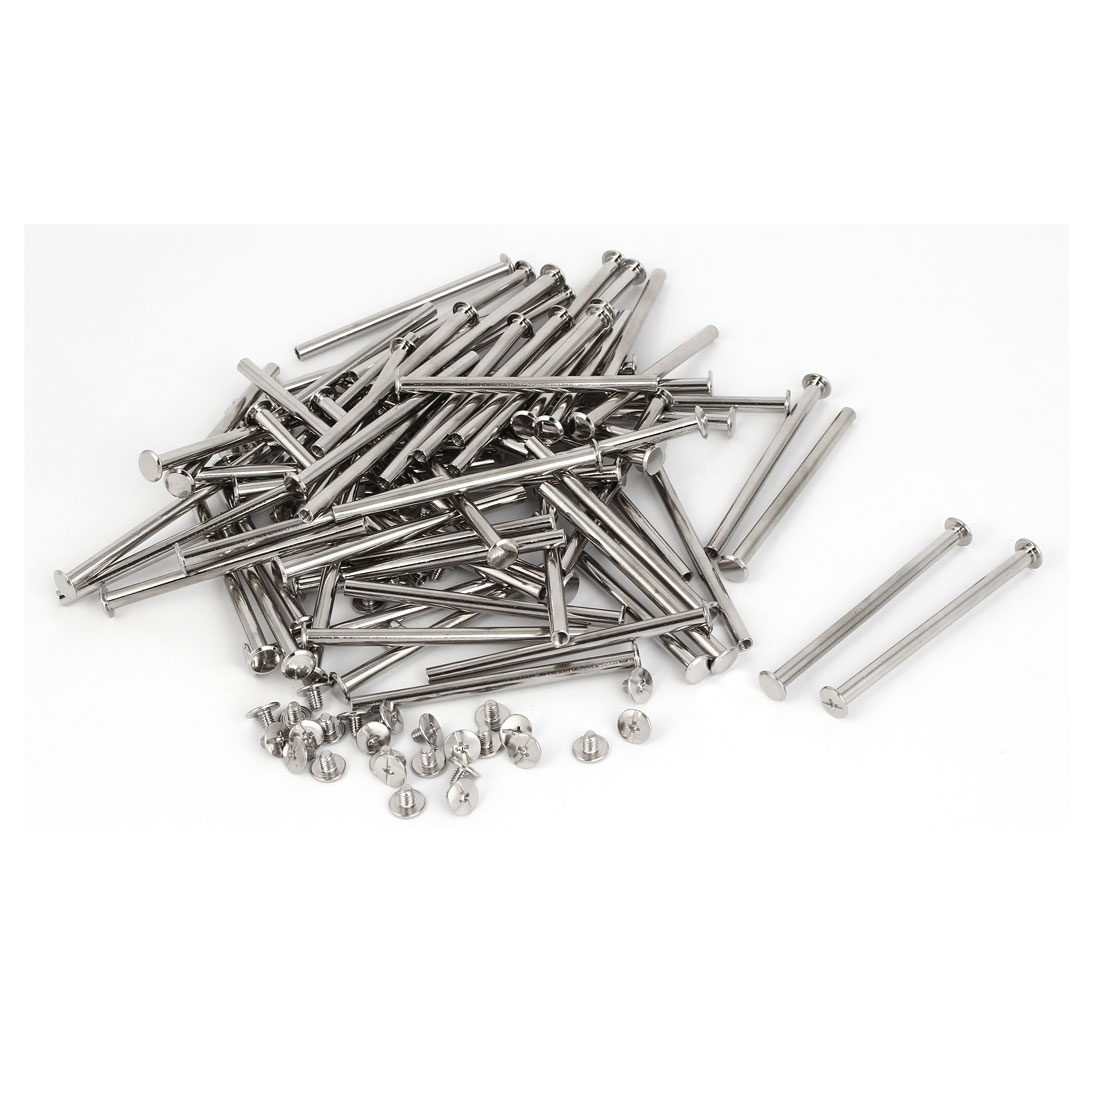 Scrapbook Photo Albums Binding Screws Posts Silver Tone M5 x 75mm 100 Pcs